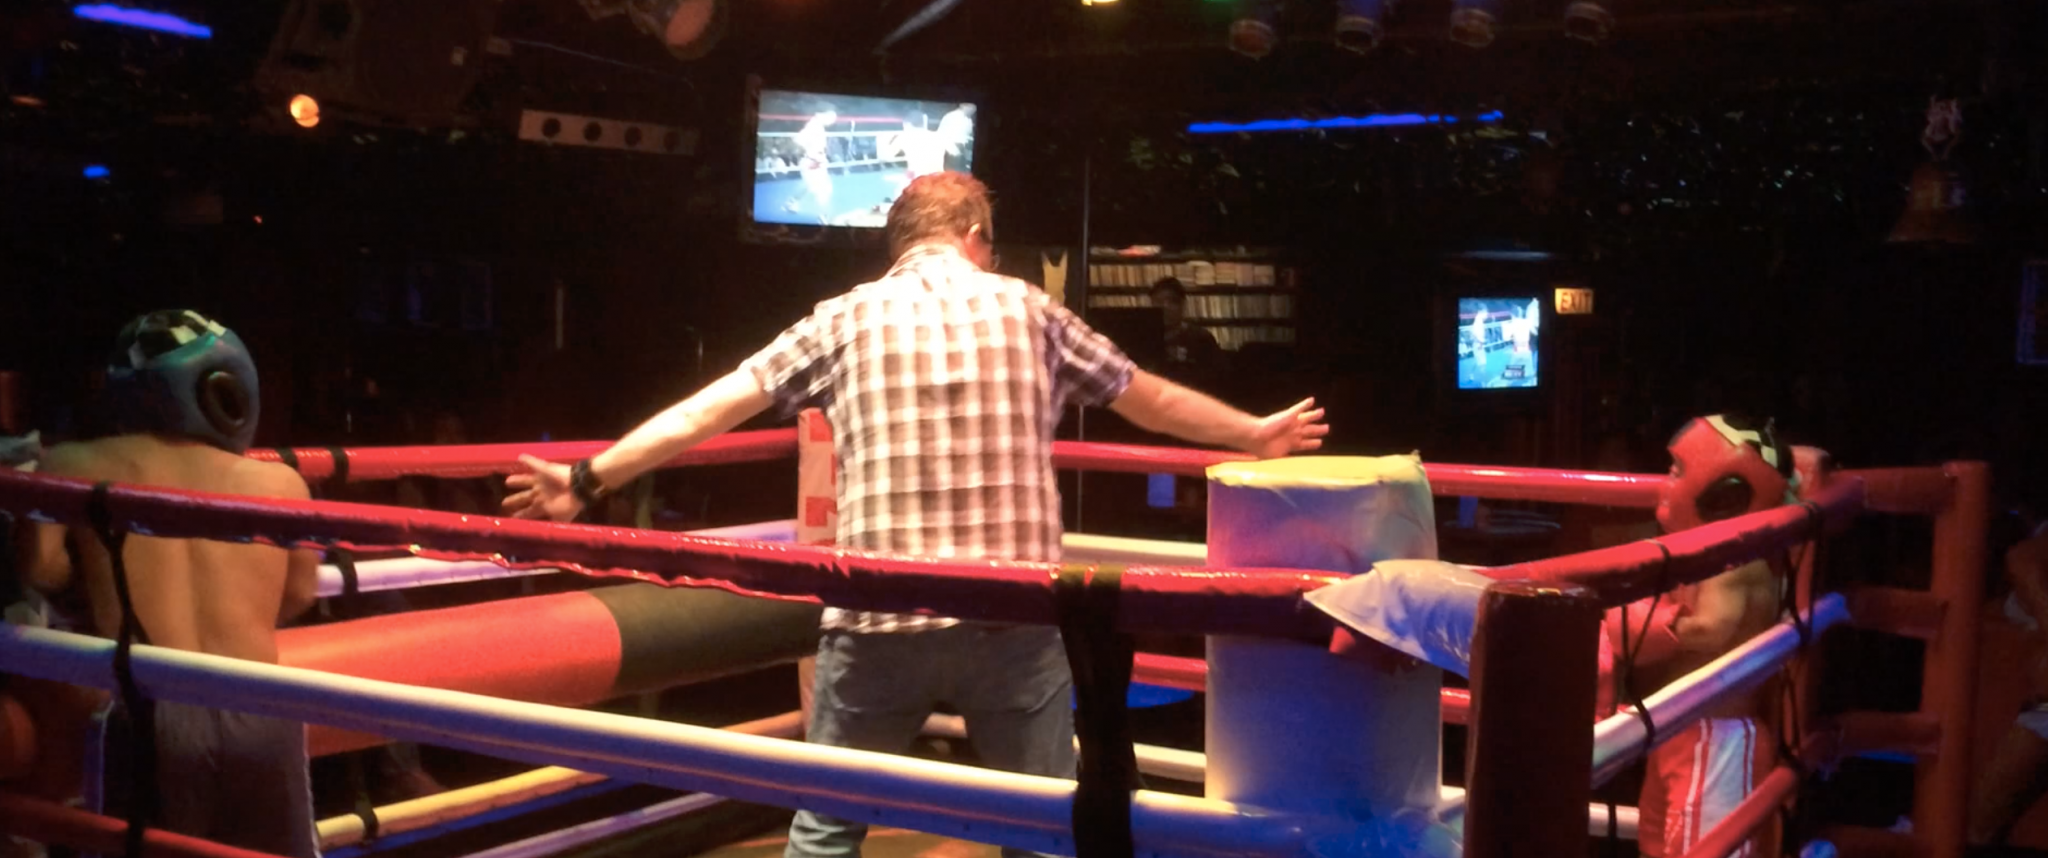 Drink tourist referees midget boxing match